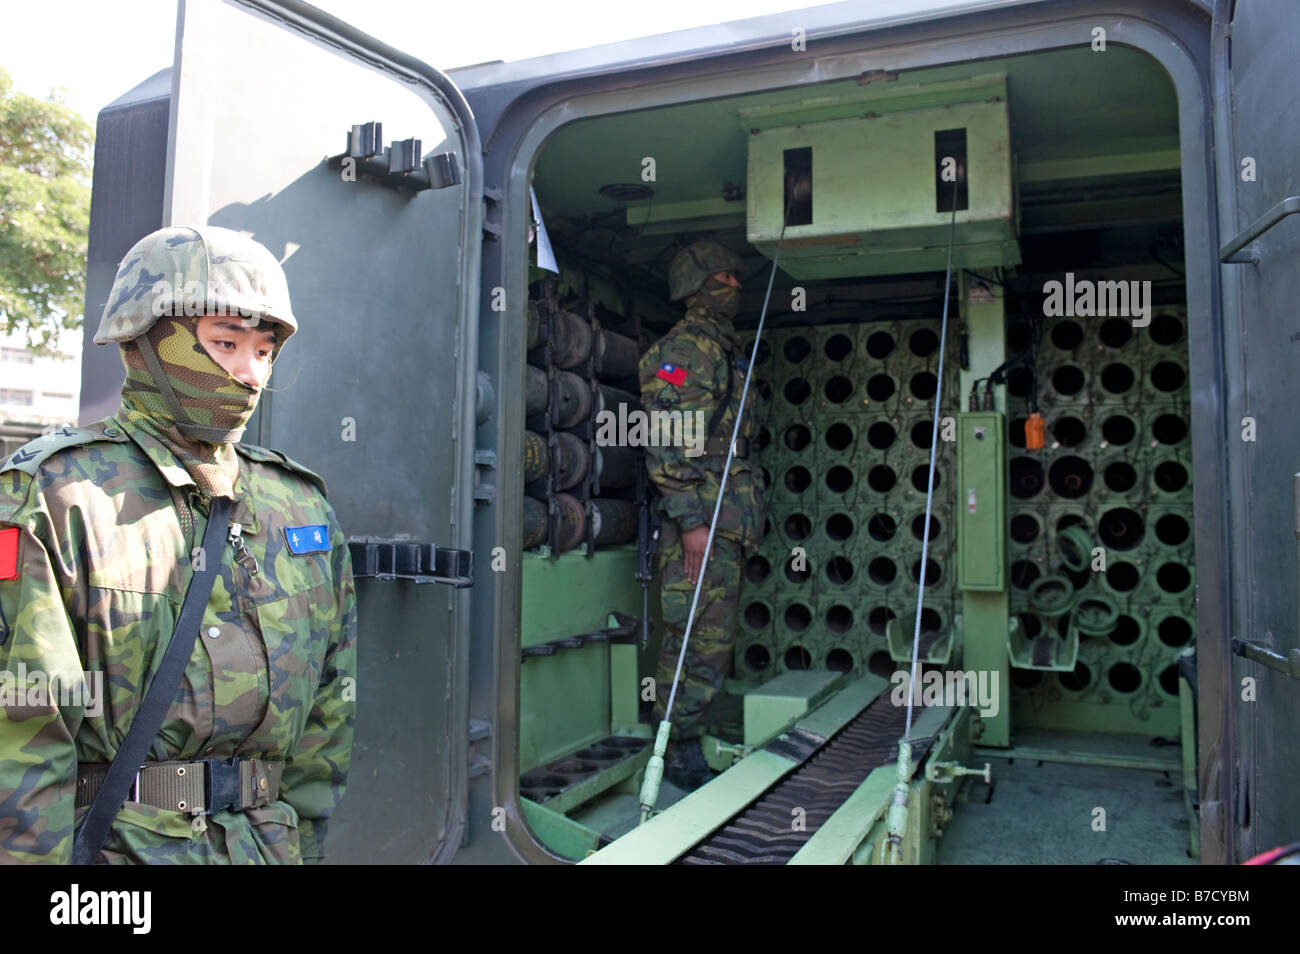 Interior View Of A CM-24 Armored Carrier, 58th Artillery Command, Taichung, Taiwan - Stock Image